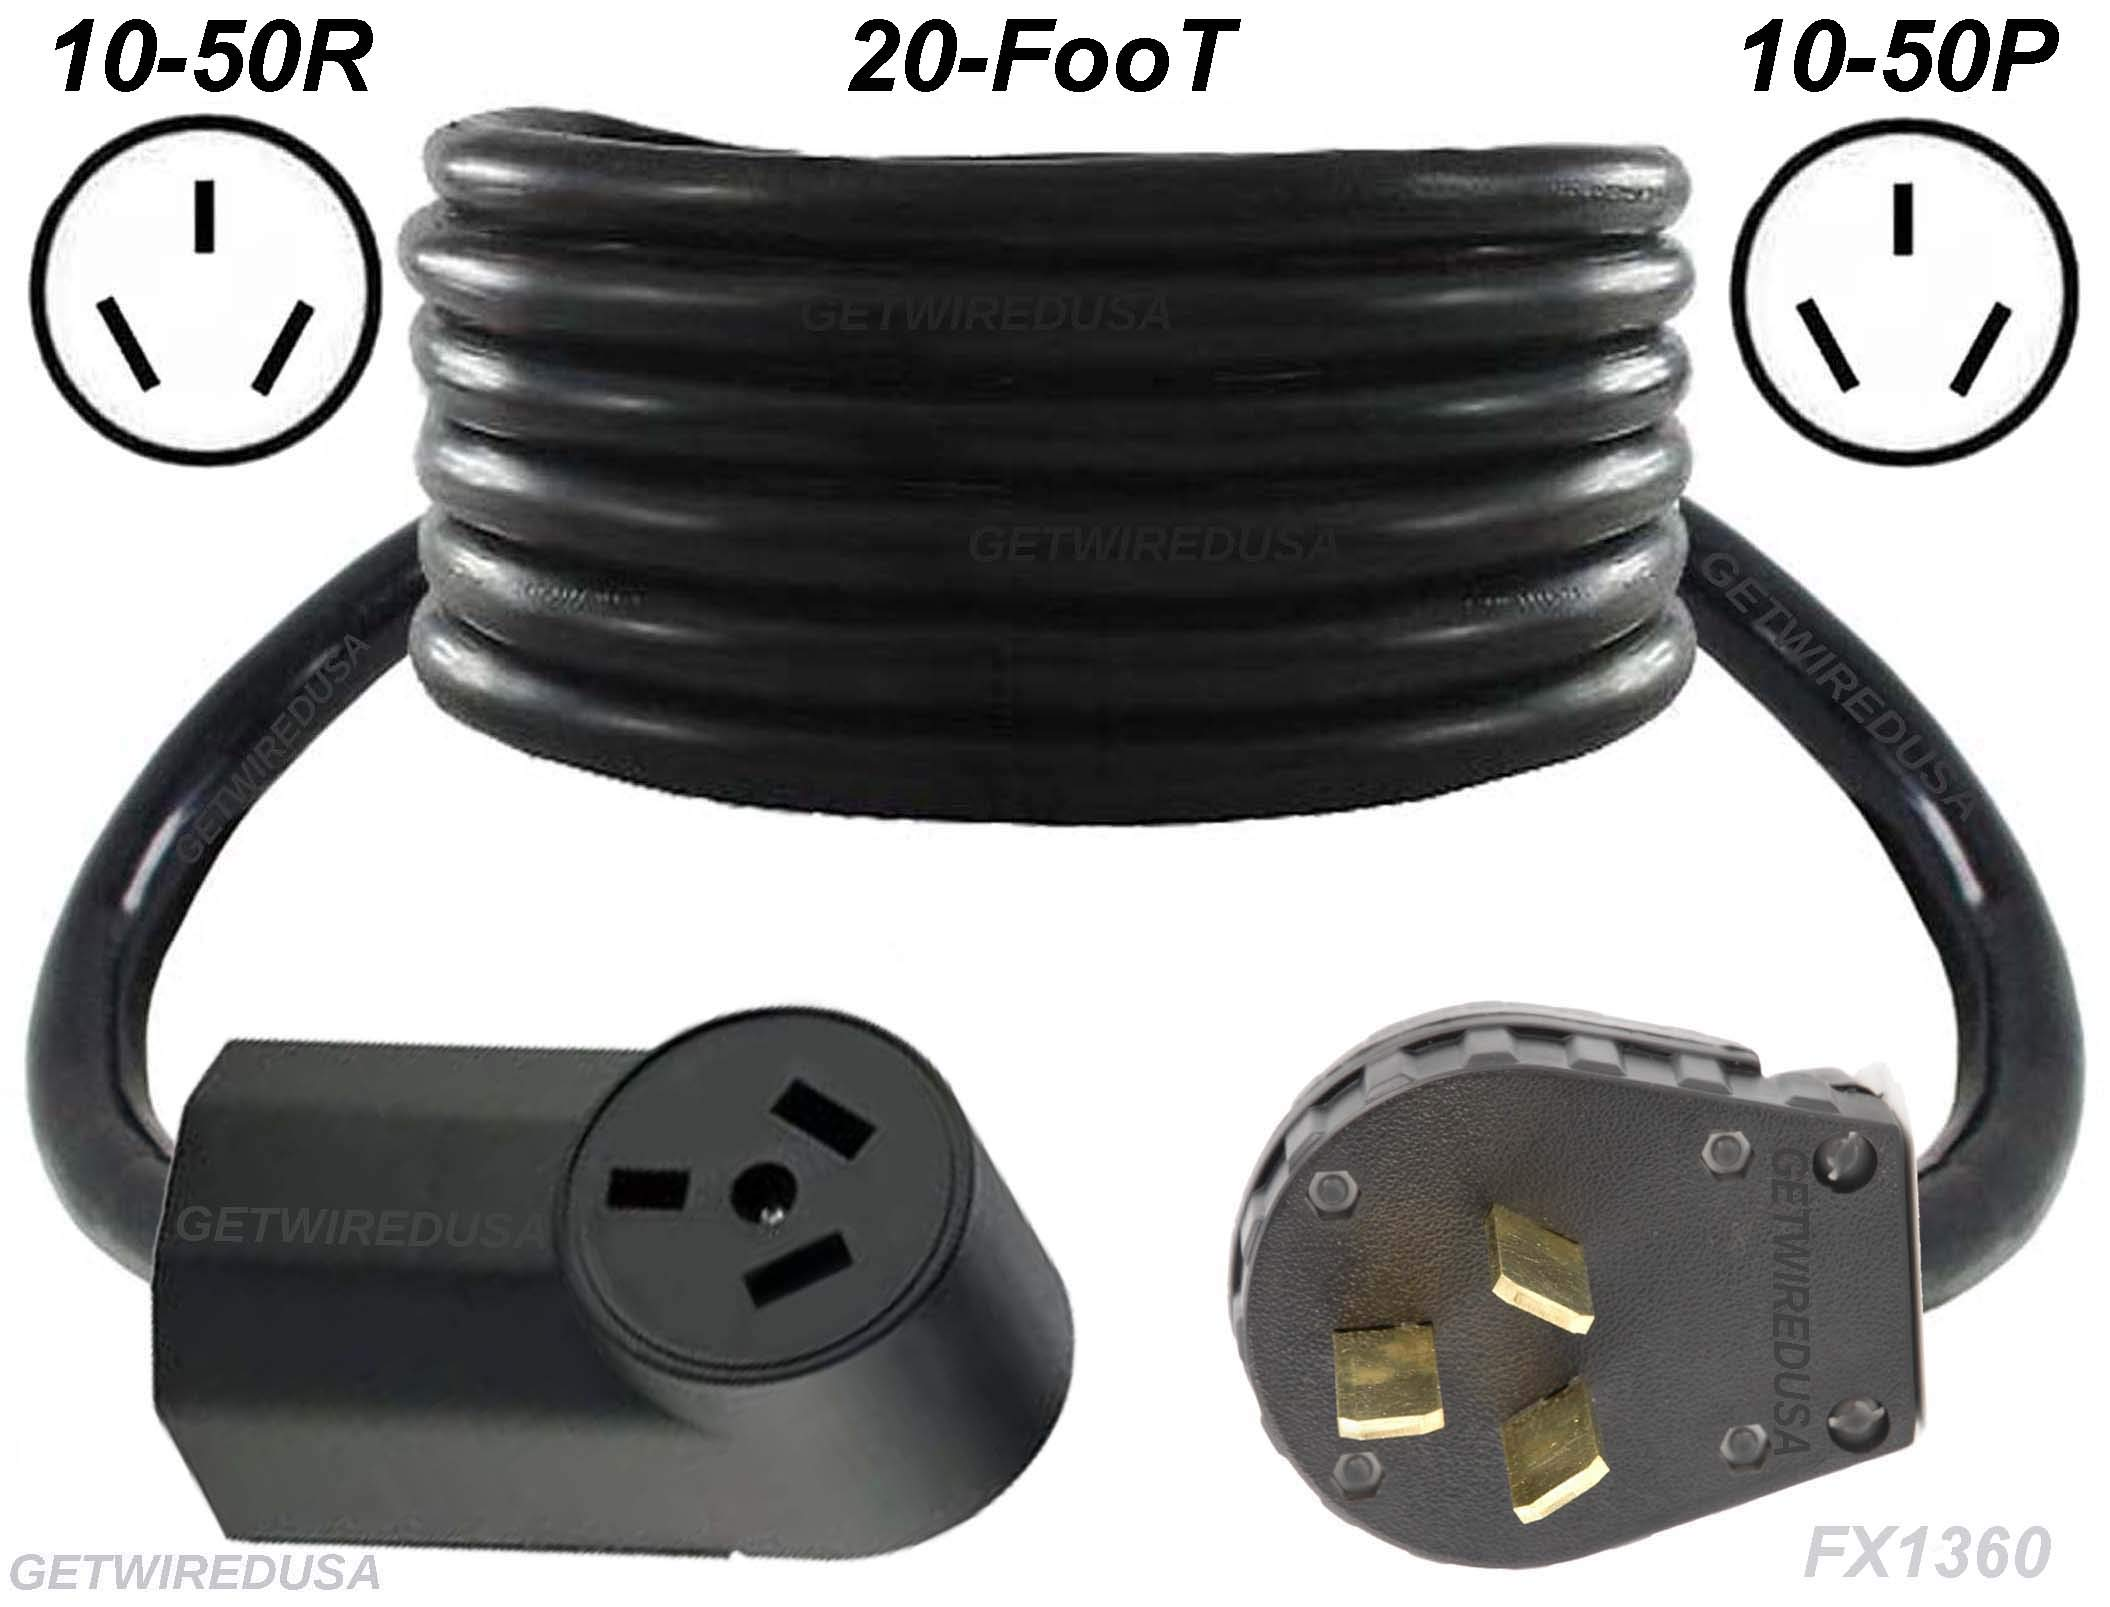 Range, Stove, Oven, 20-FT Extension Cord 10-50P Male 3-Pin Plug To 10-50R Female Receptacle, Heavy Duty, Real Copper Wire, 10/3 10AWG 10-Gauge, NEMA, 20-Foot Long, Made In American, FX1360-R by getwiredusa